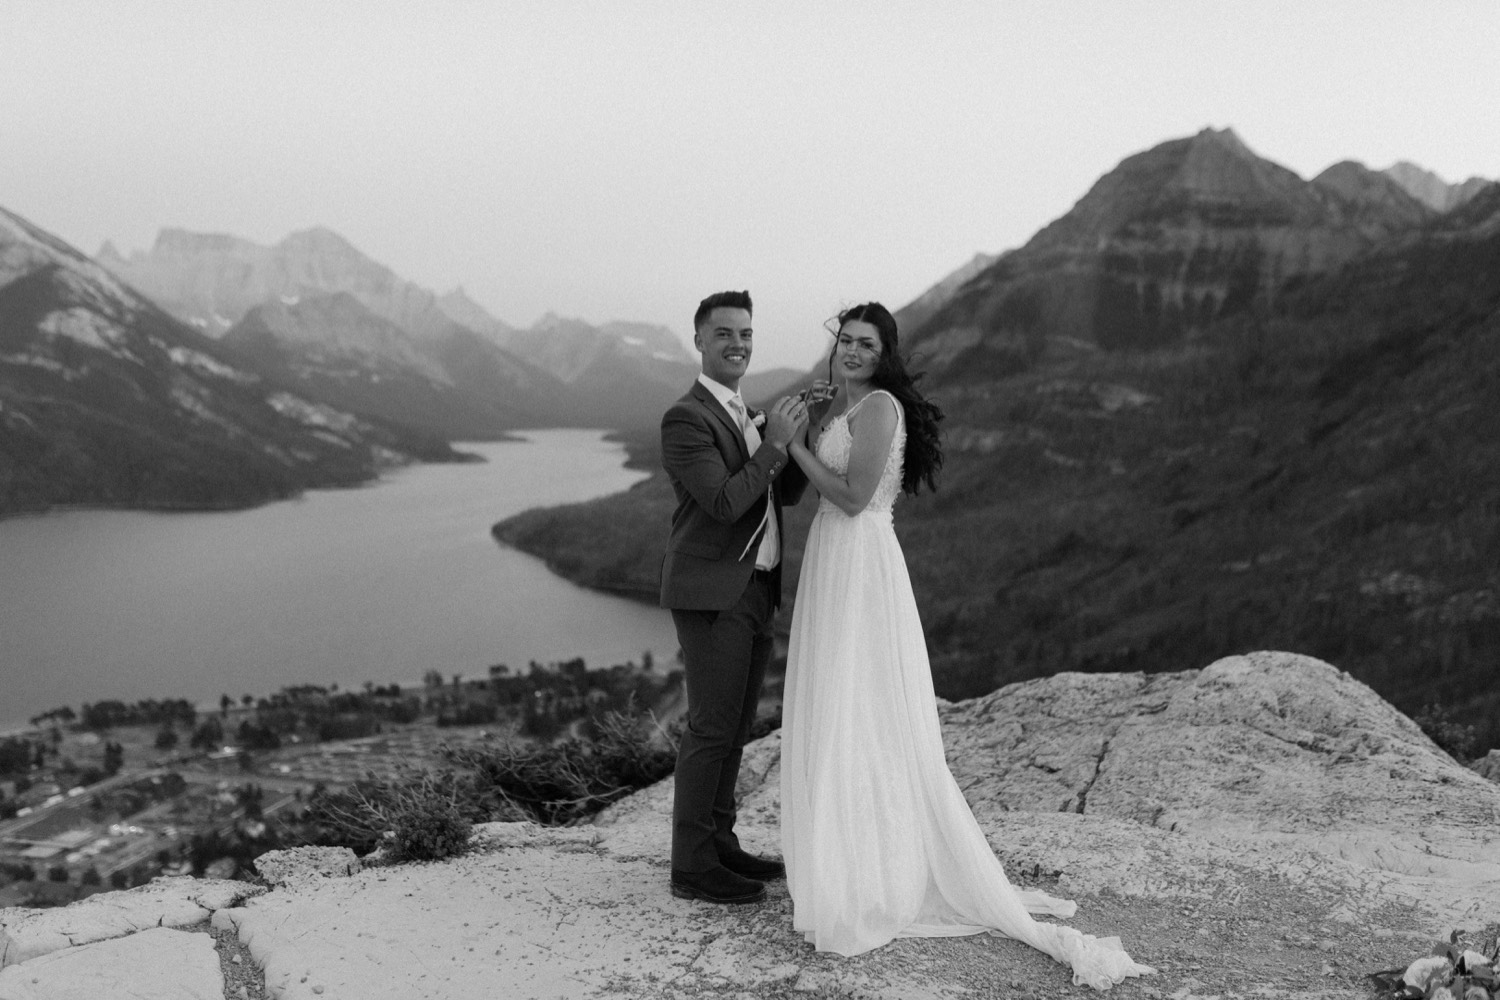 Waterton Wedding Adventurous Mountain Elopement style in the beautiful Canadian Rocky Mountains couple photos of couple on the mountain top right after their ceremony with close friends and officiant